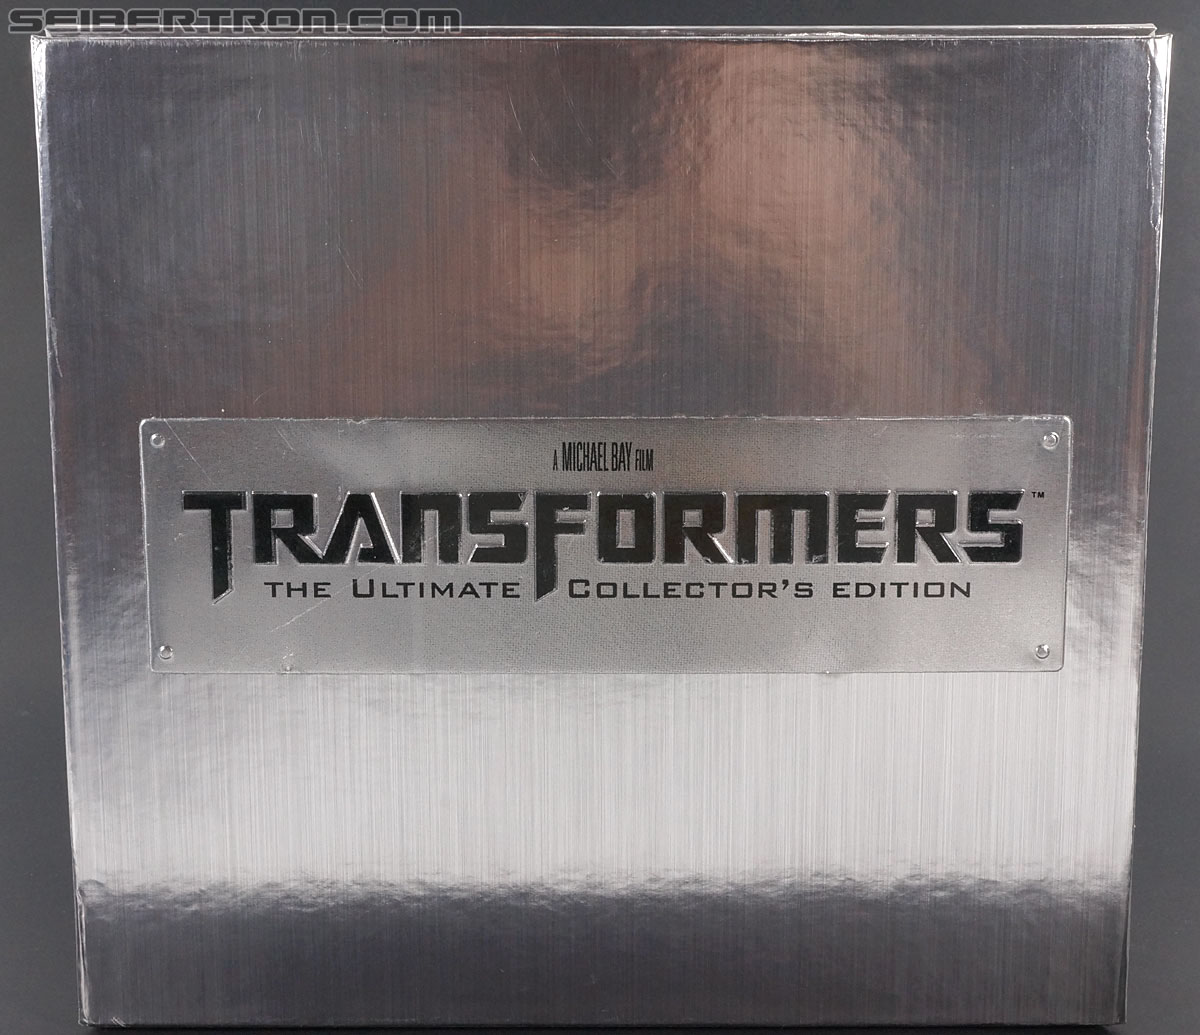 Transformers The Ultimate Collector's Edition Blu-Ray set